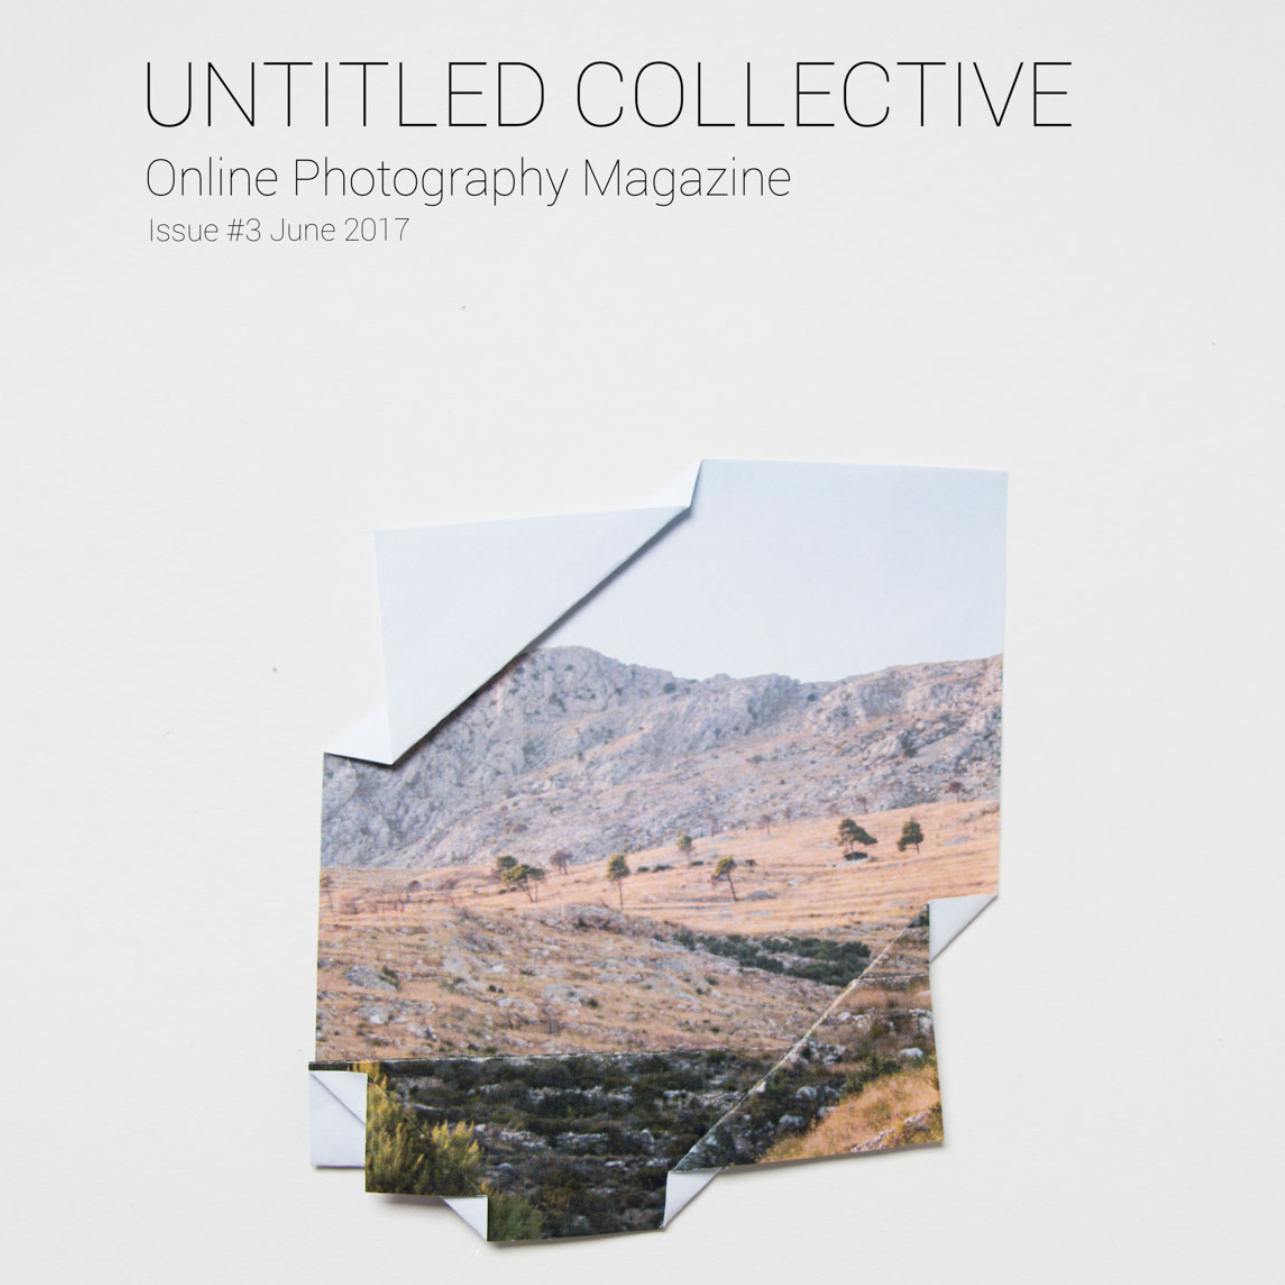 untitled-collective_001.jpg